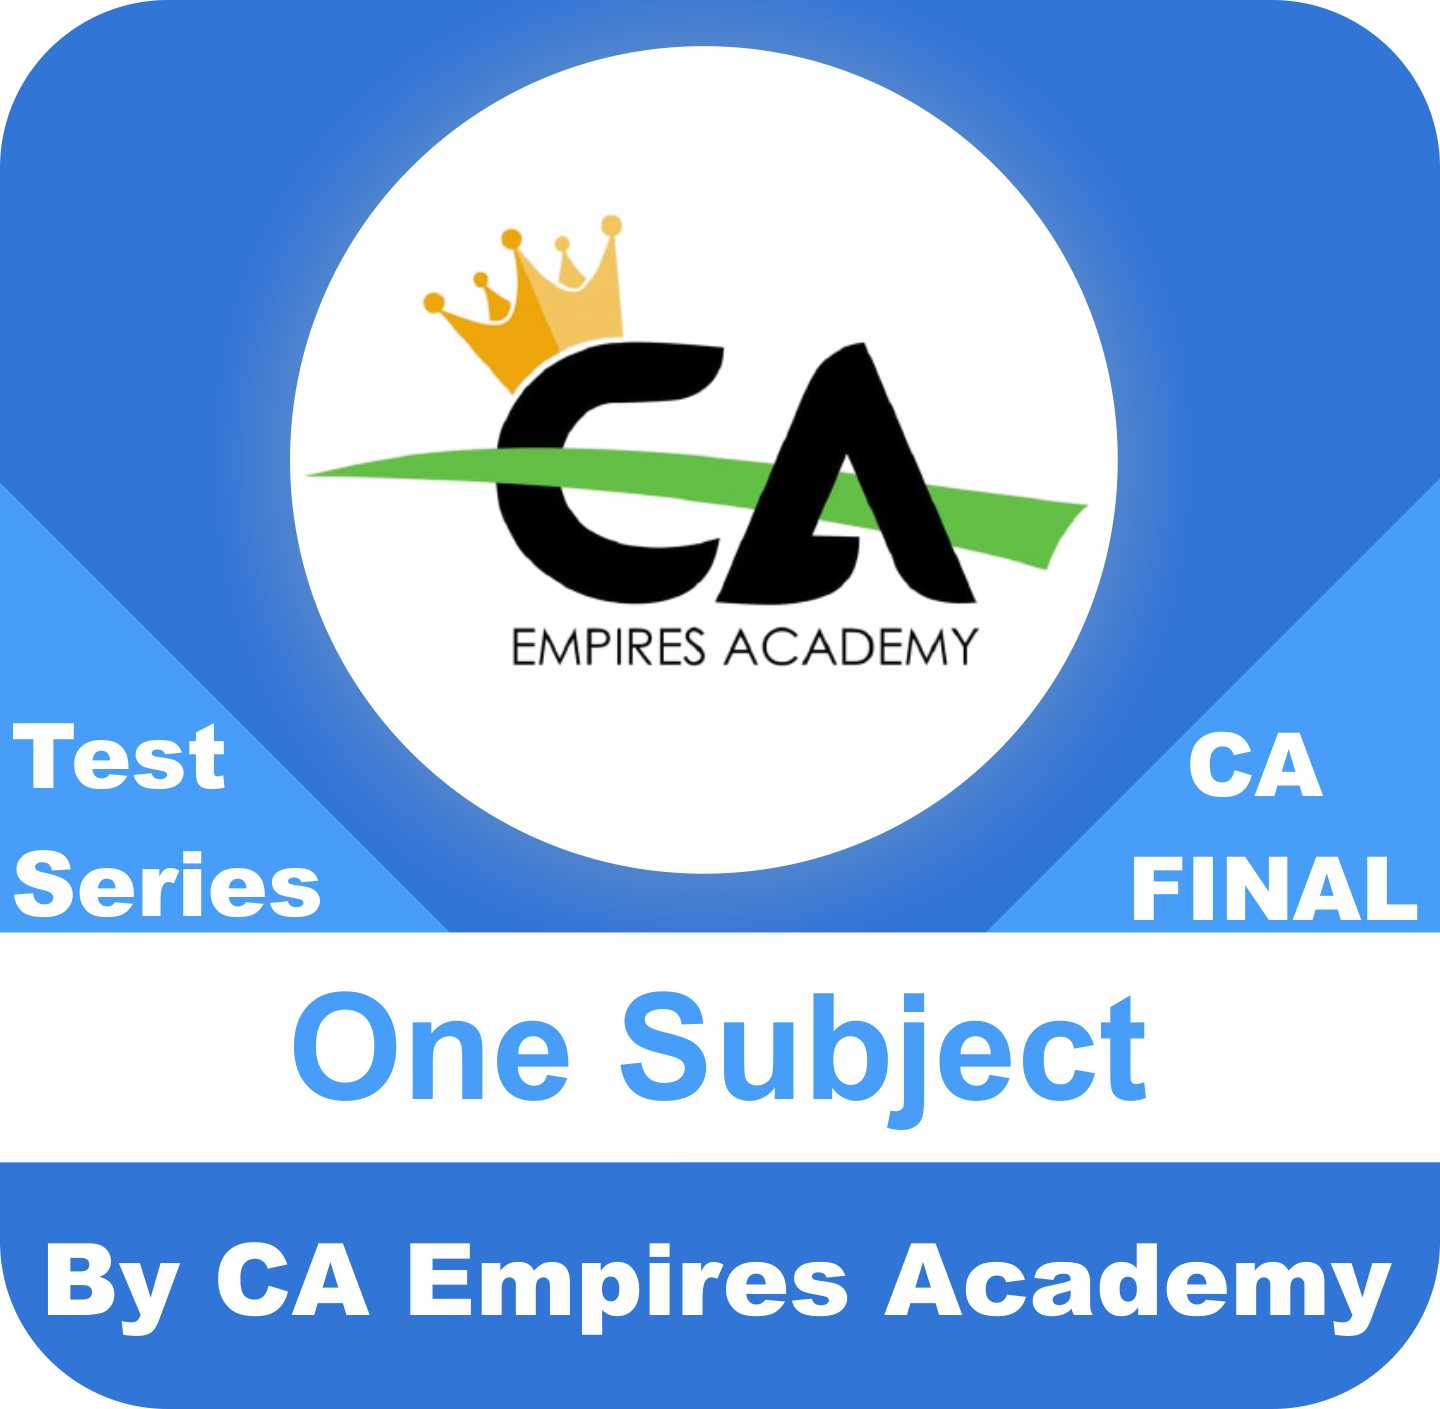 CA Final Any One Subject Test Series in Bronze Plan by CA Empires Academy